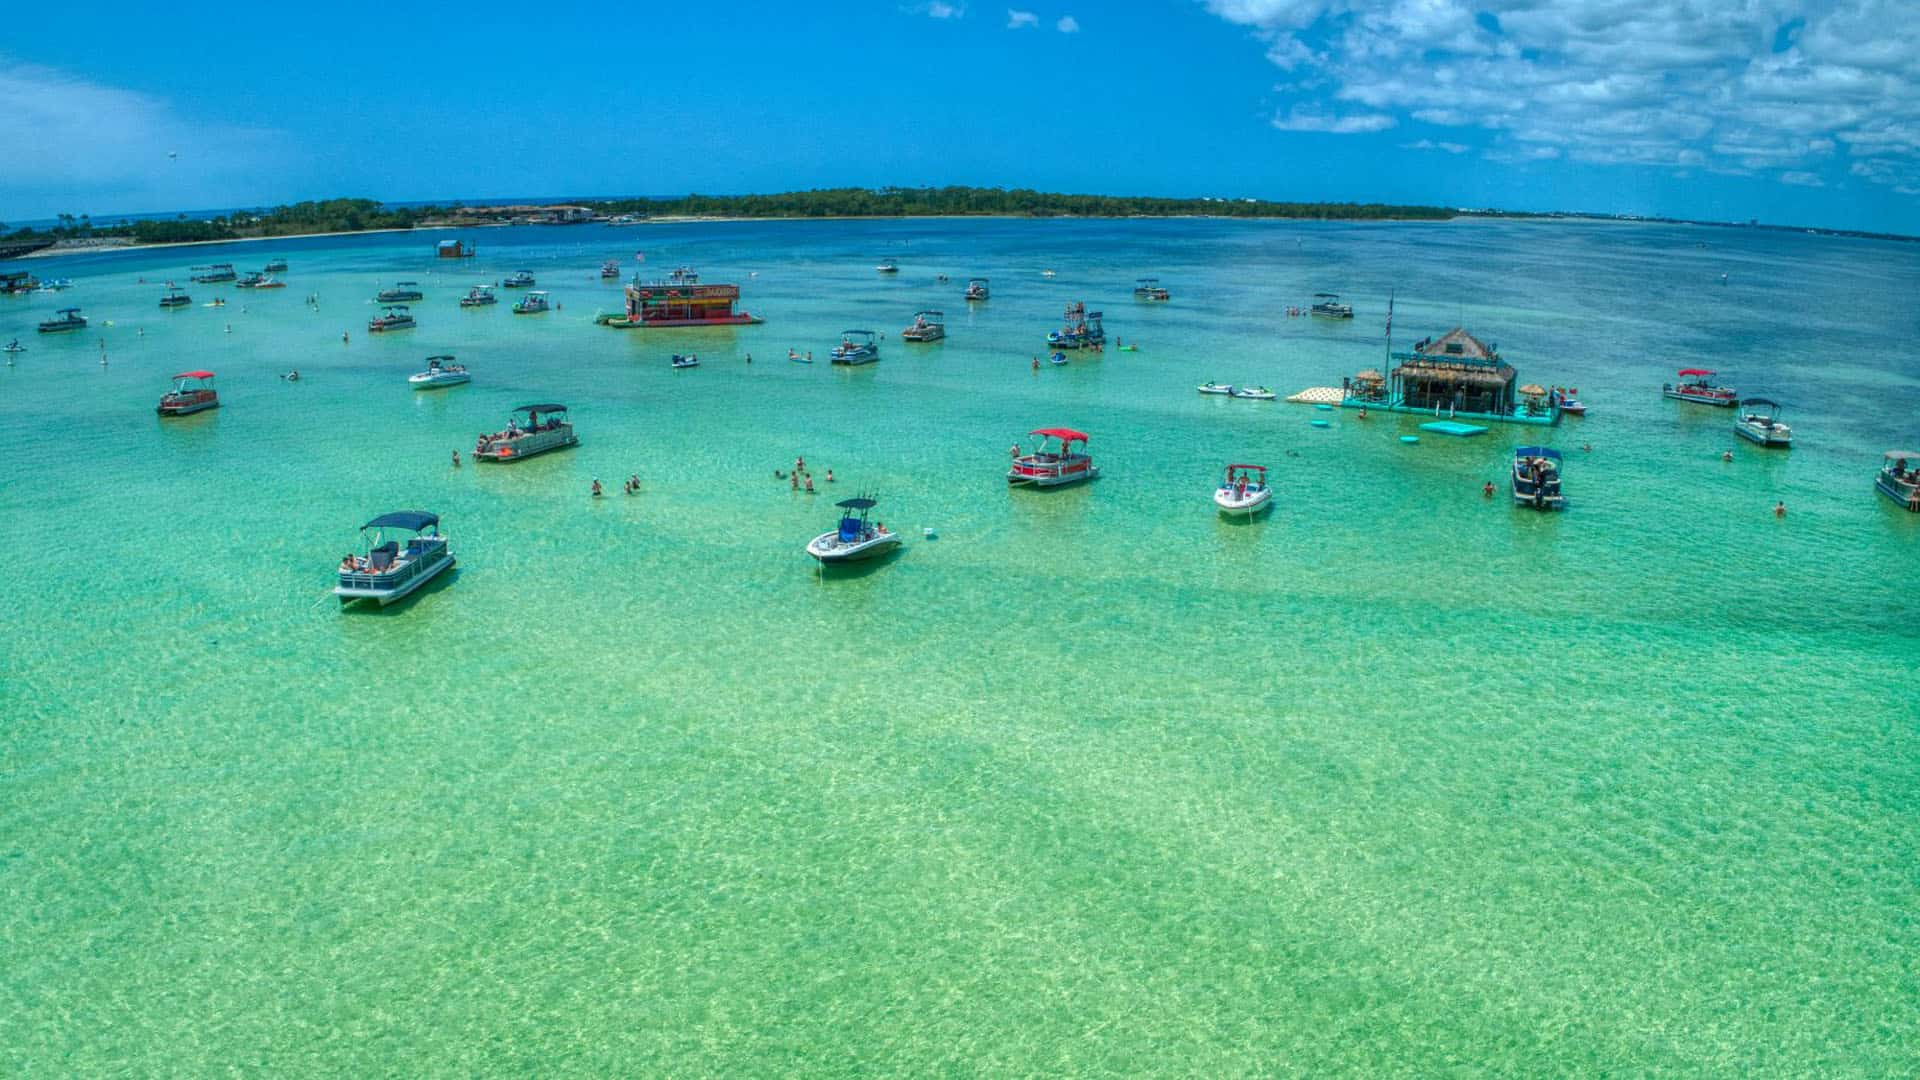 Dozens of boats parked in crystal clear blue water on sunny day